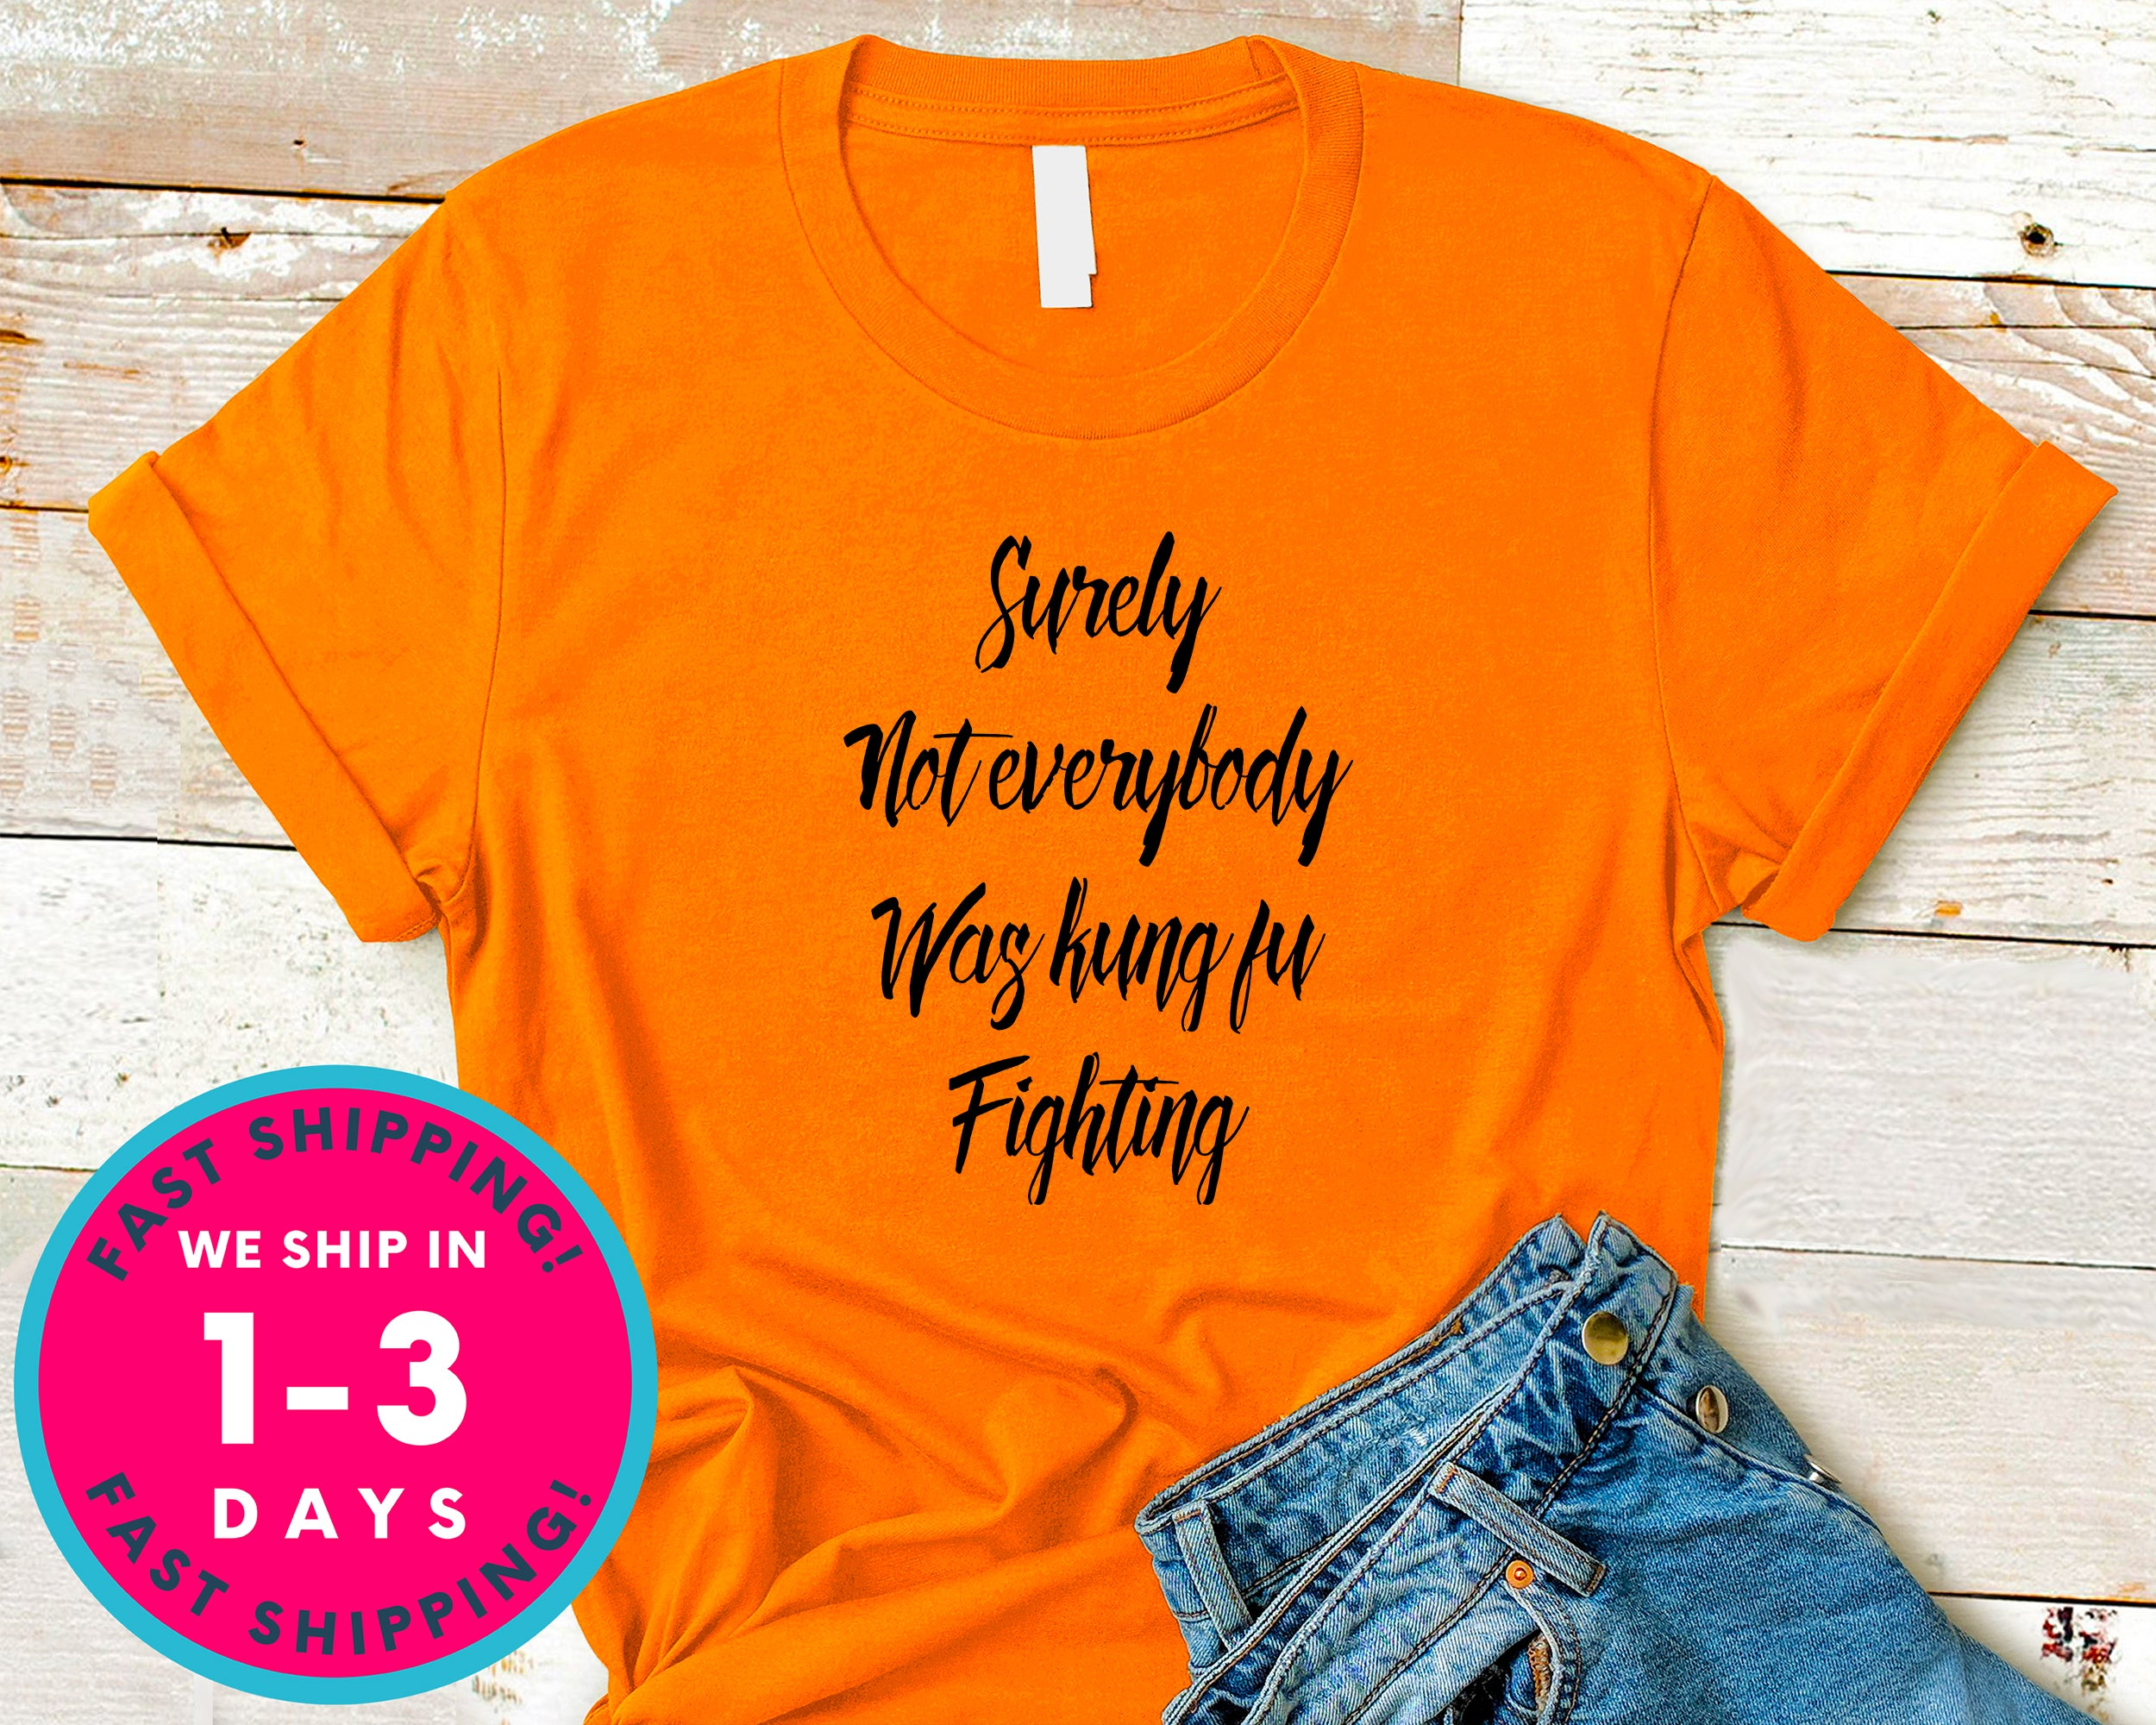 Surely Not Everybody Was Kung Fu Fighting T-Shirt - Funny Humor Shirt